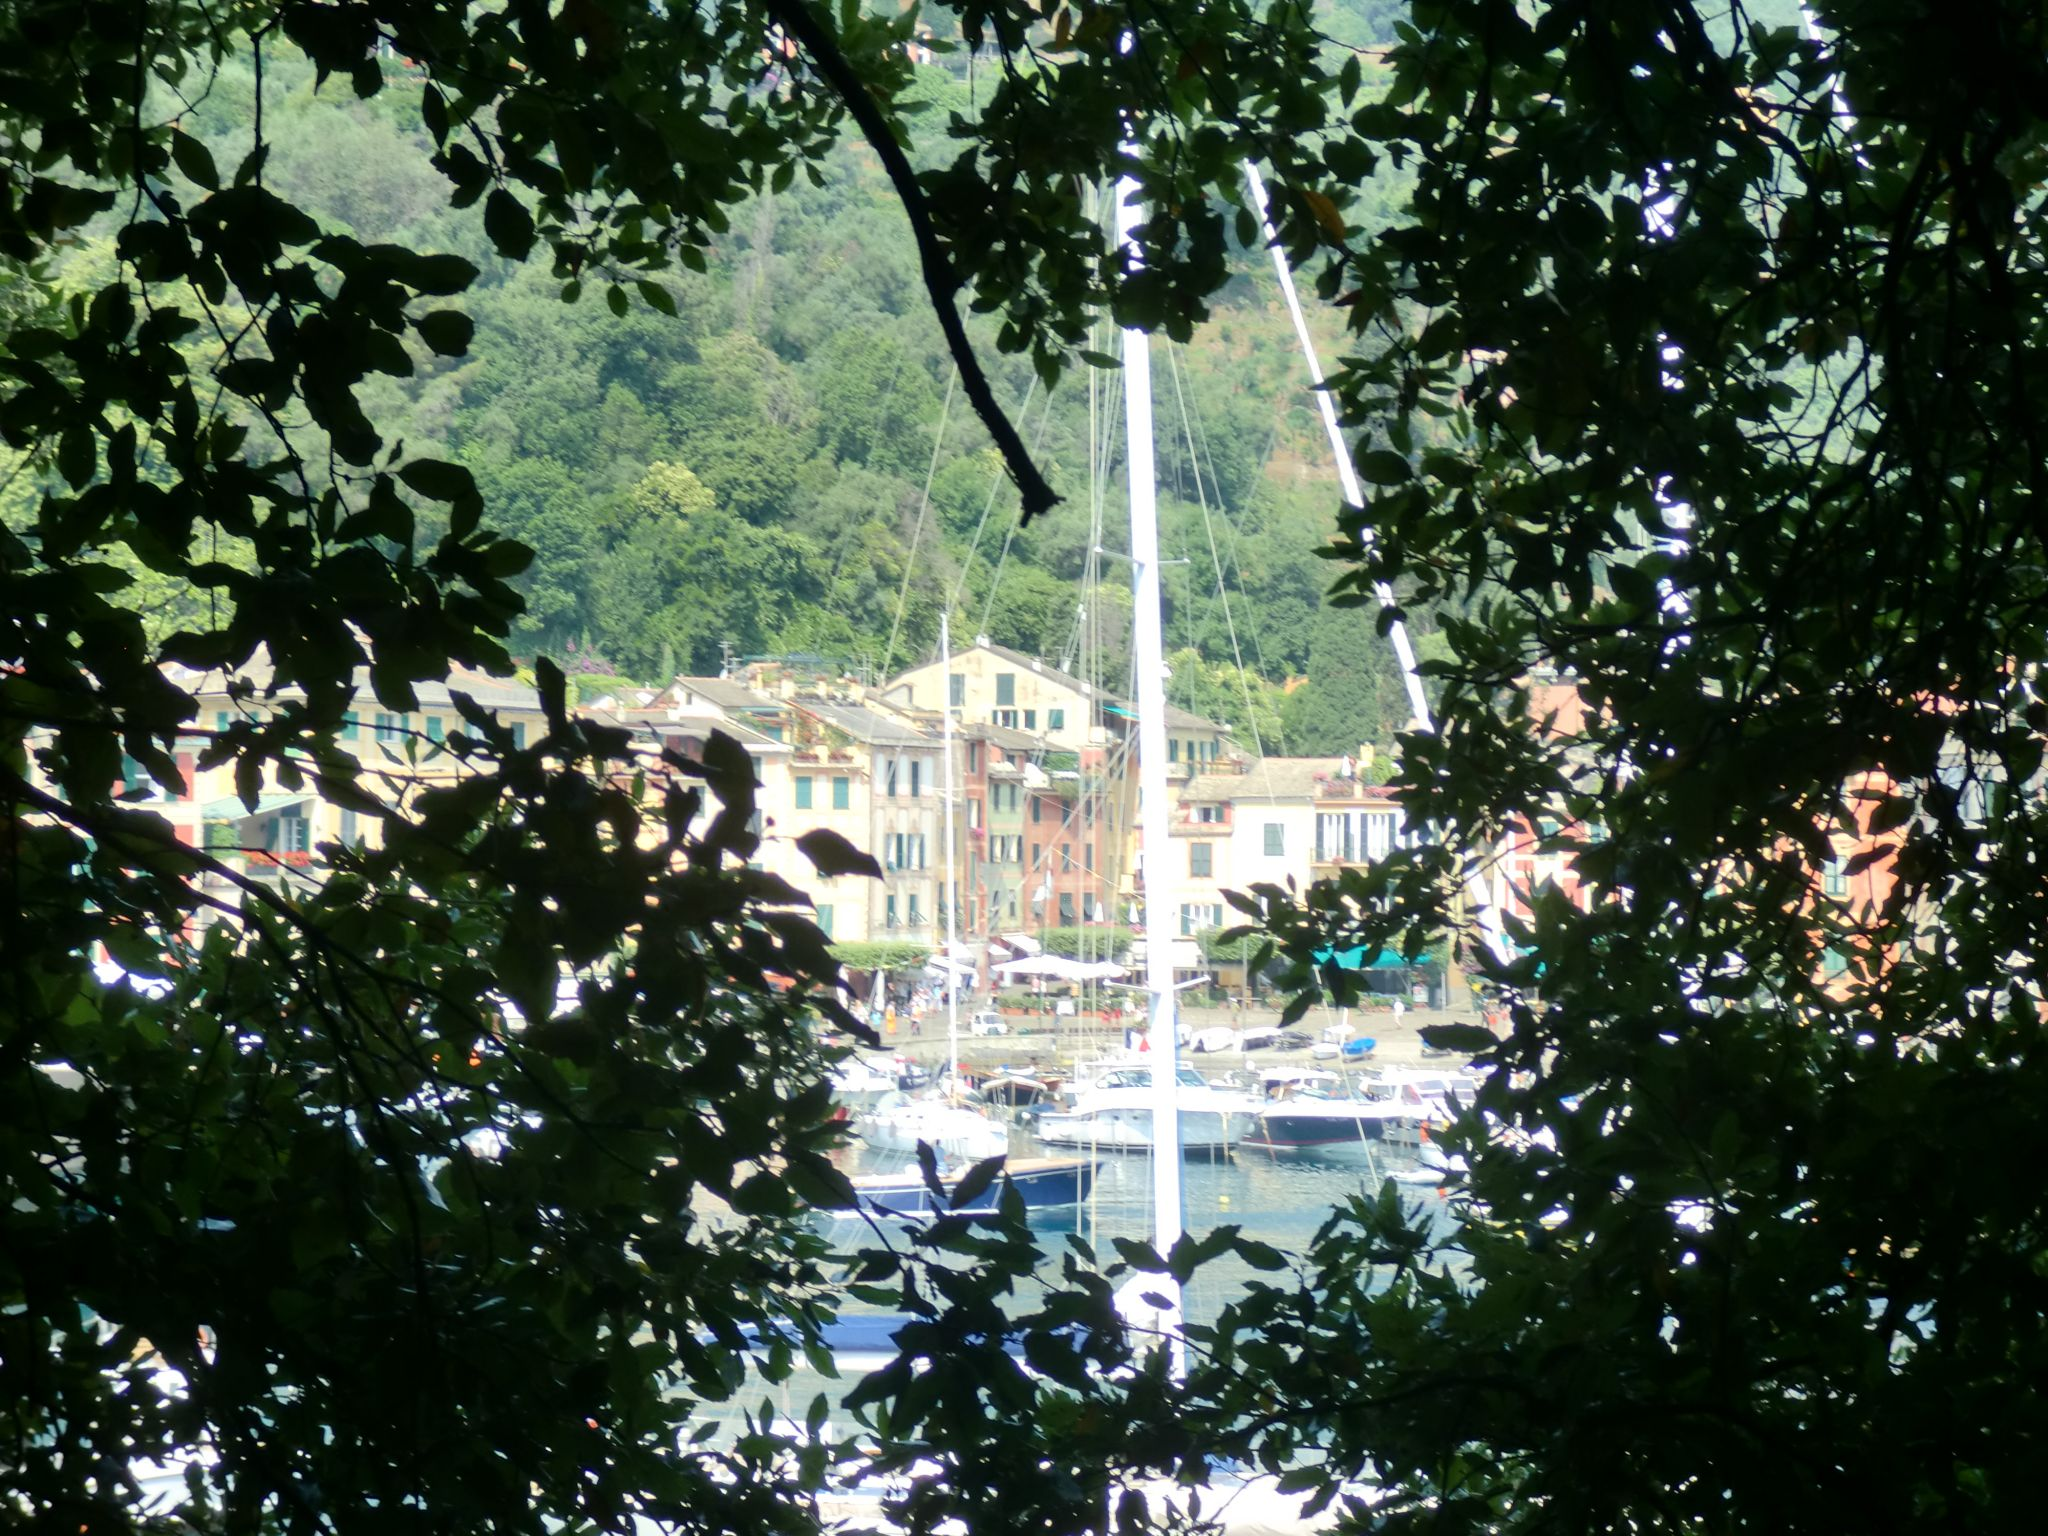 Portofino 19 - Portofino: a small pearl on the sea